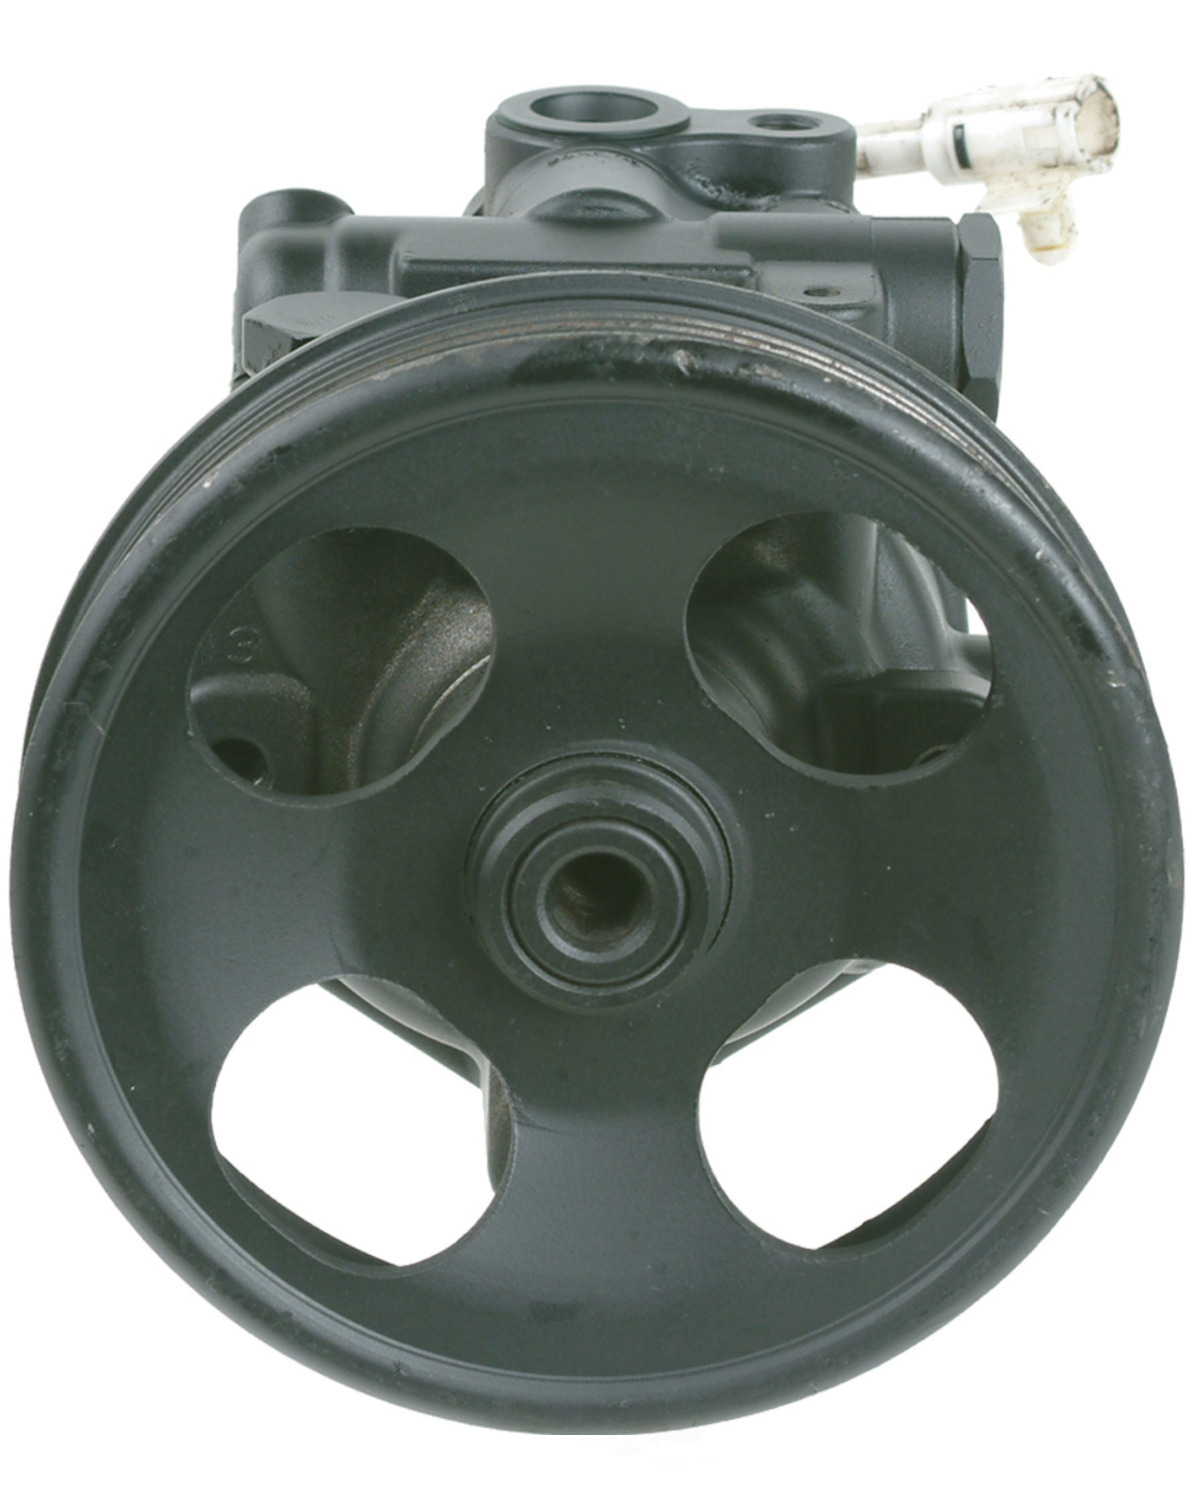 215330 Subaru Forester 20032005 Remanufactured Power Steering Pump